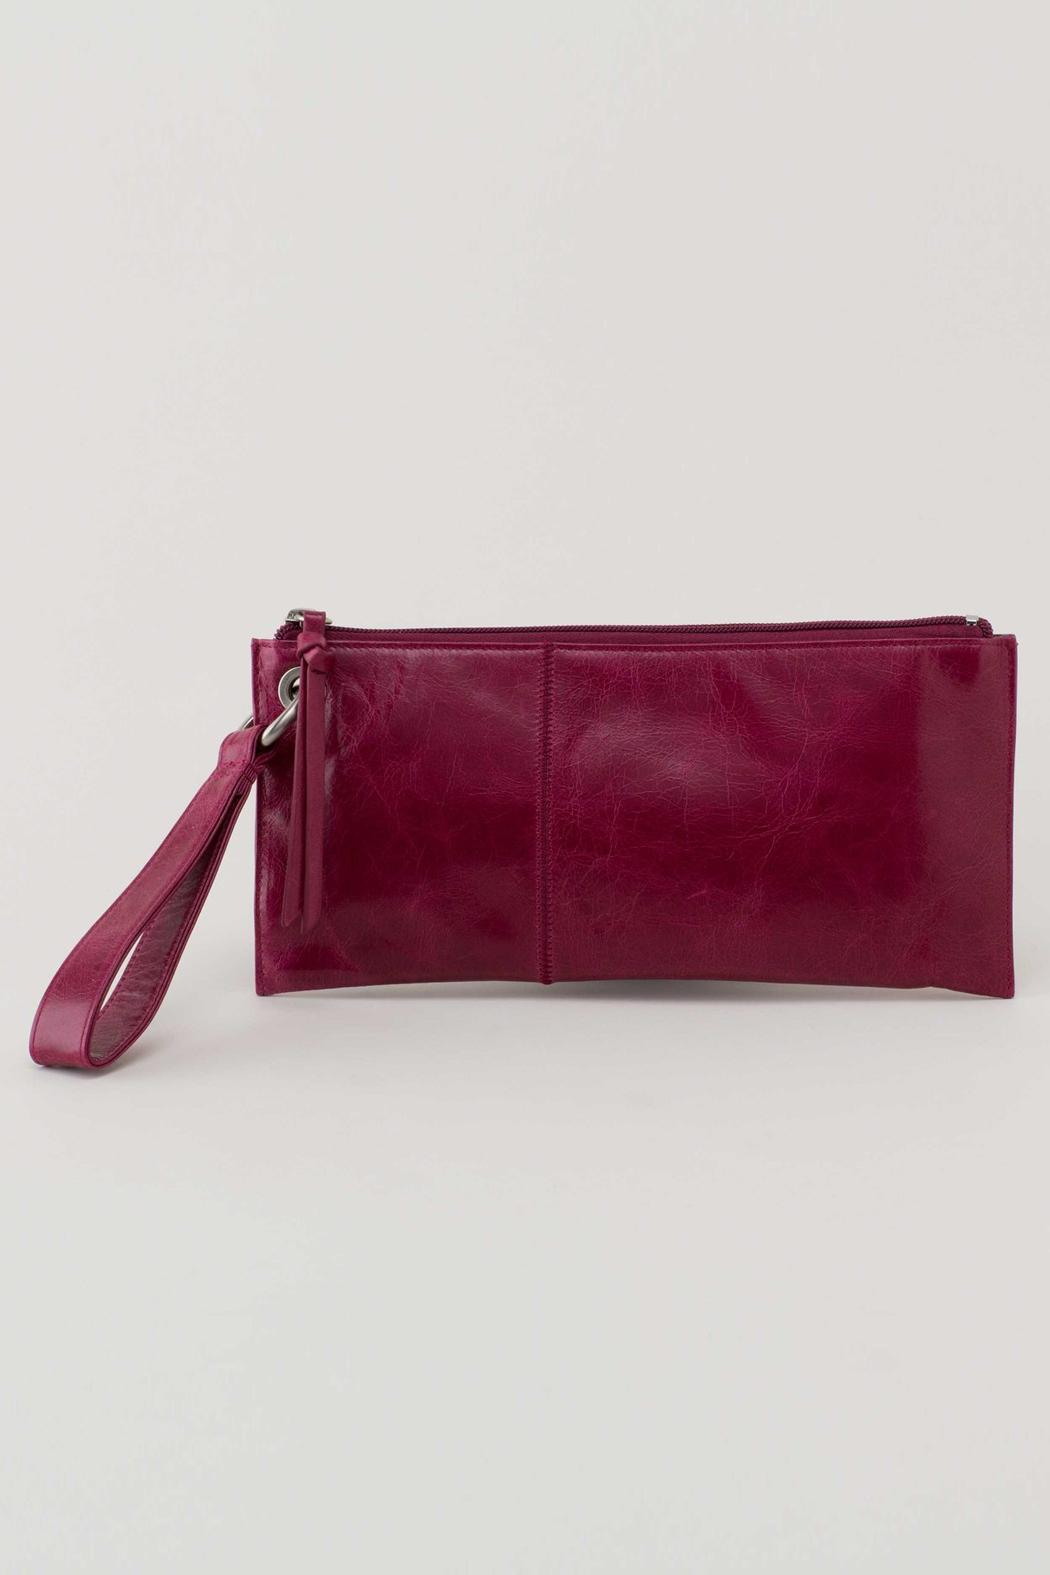 VIDA Statement Clutch - Muah by VIDA leyBVE6wg